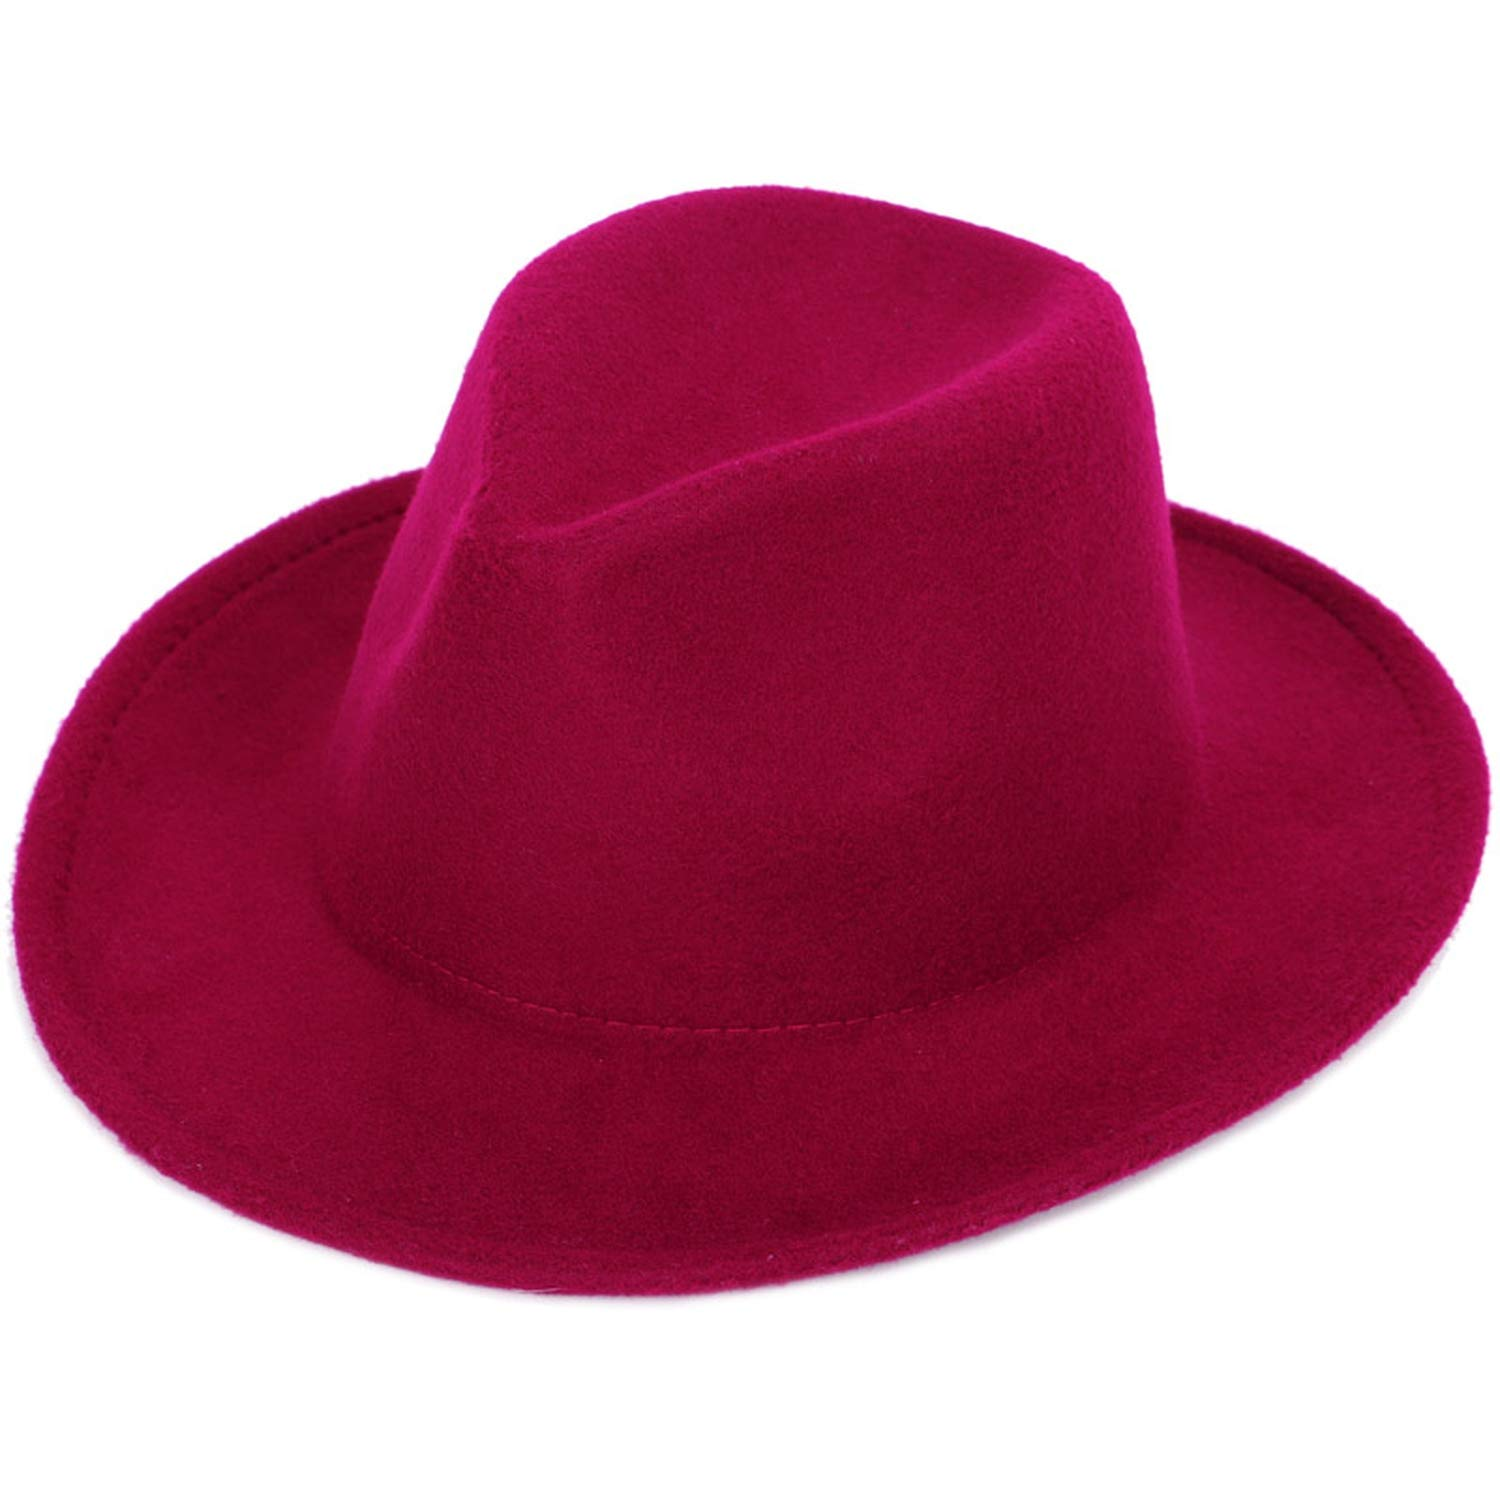 Retro Mens Faux Wool Fedora Solid Color Fashion Autumn and Hats Adjustable Man Woman Universal caps Classic